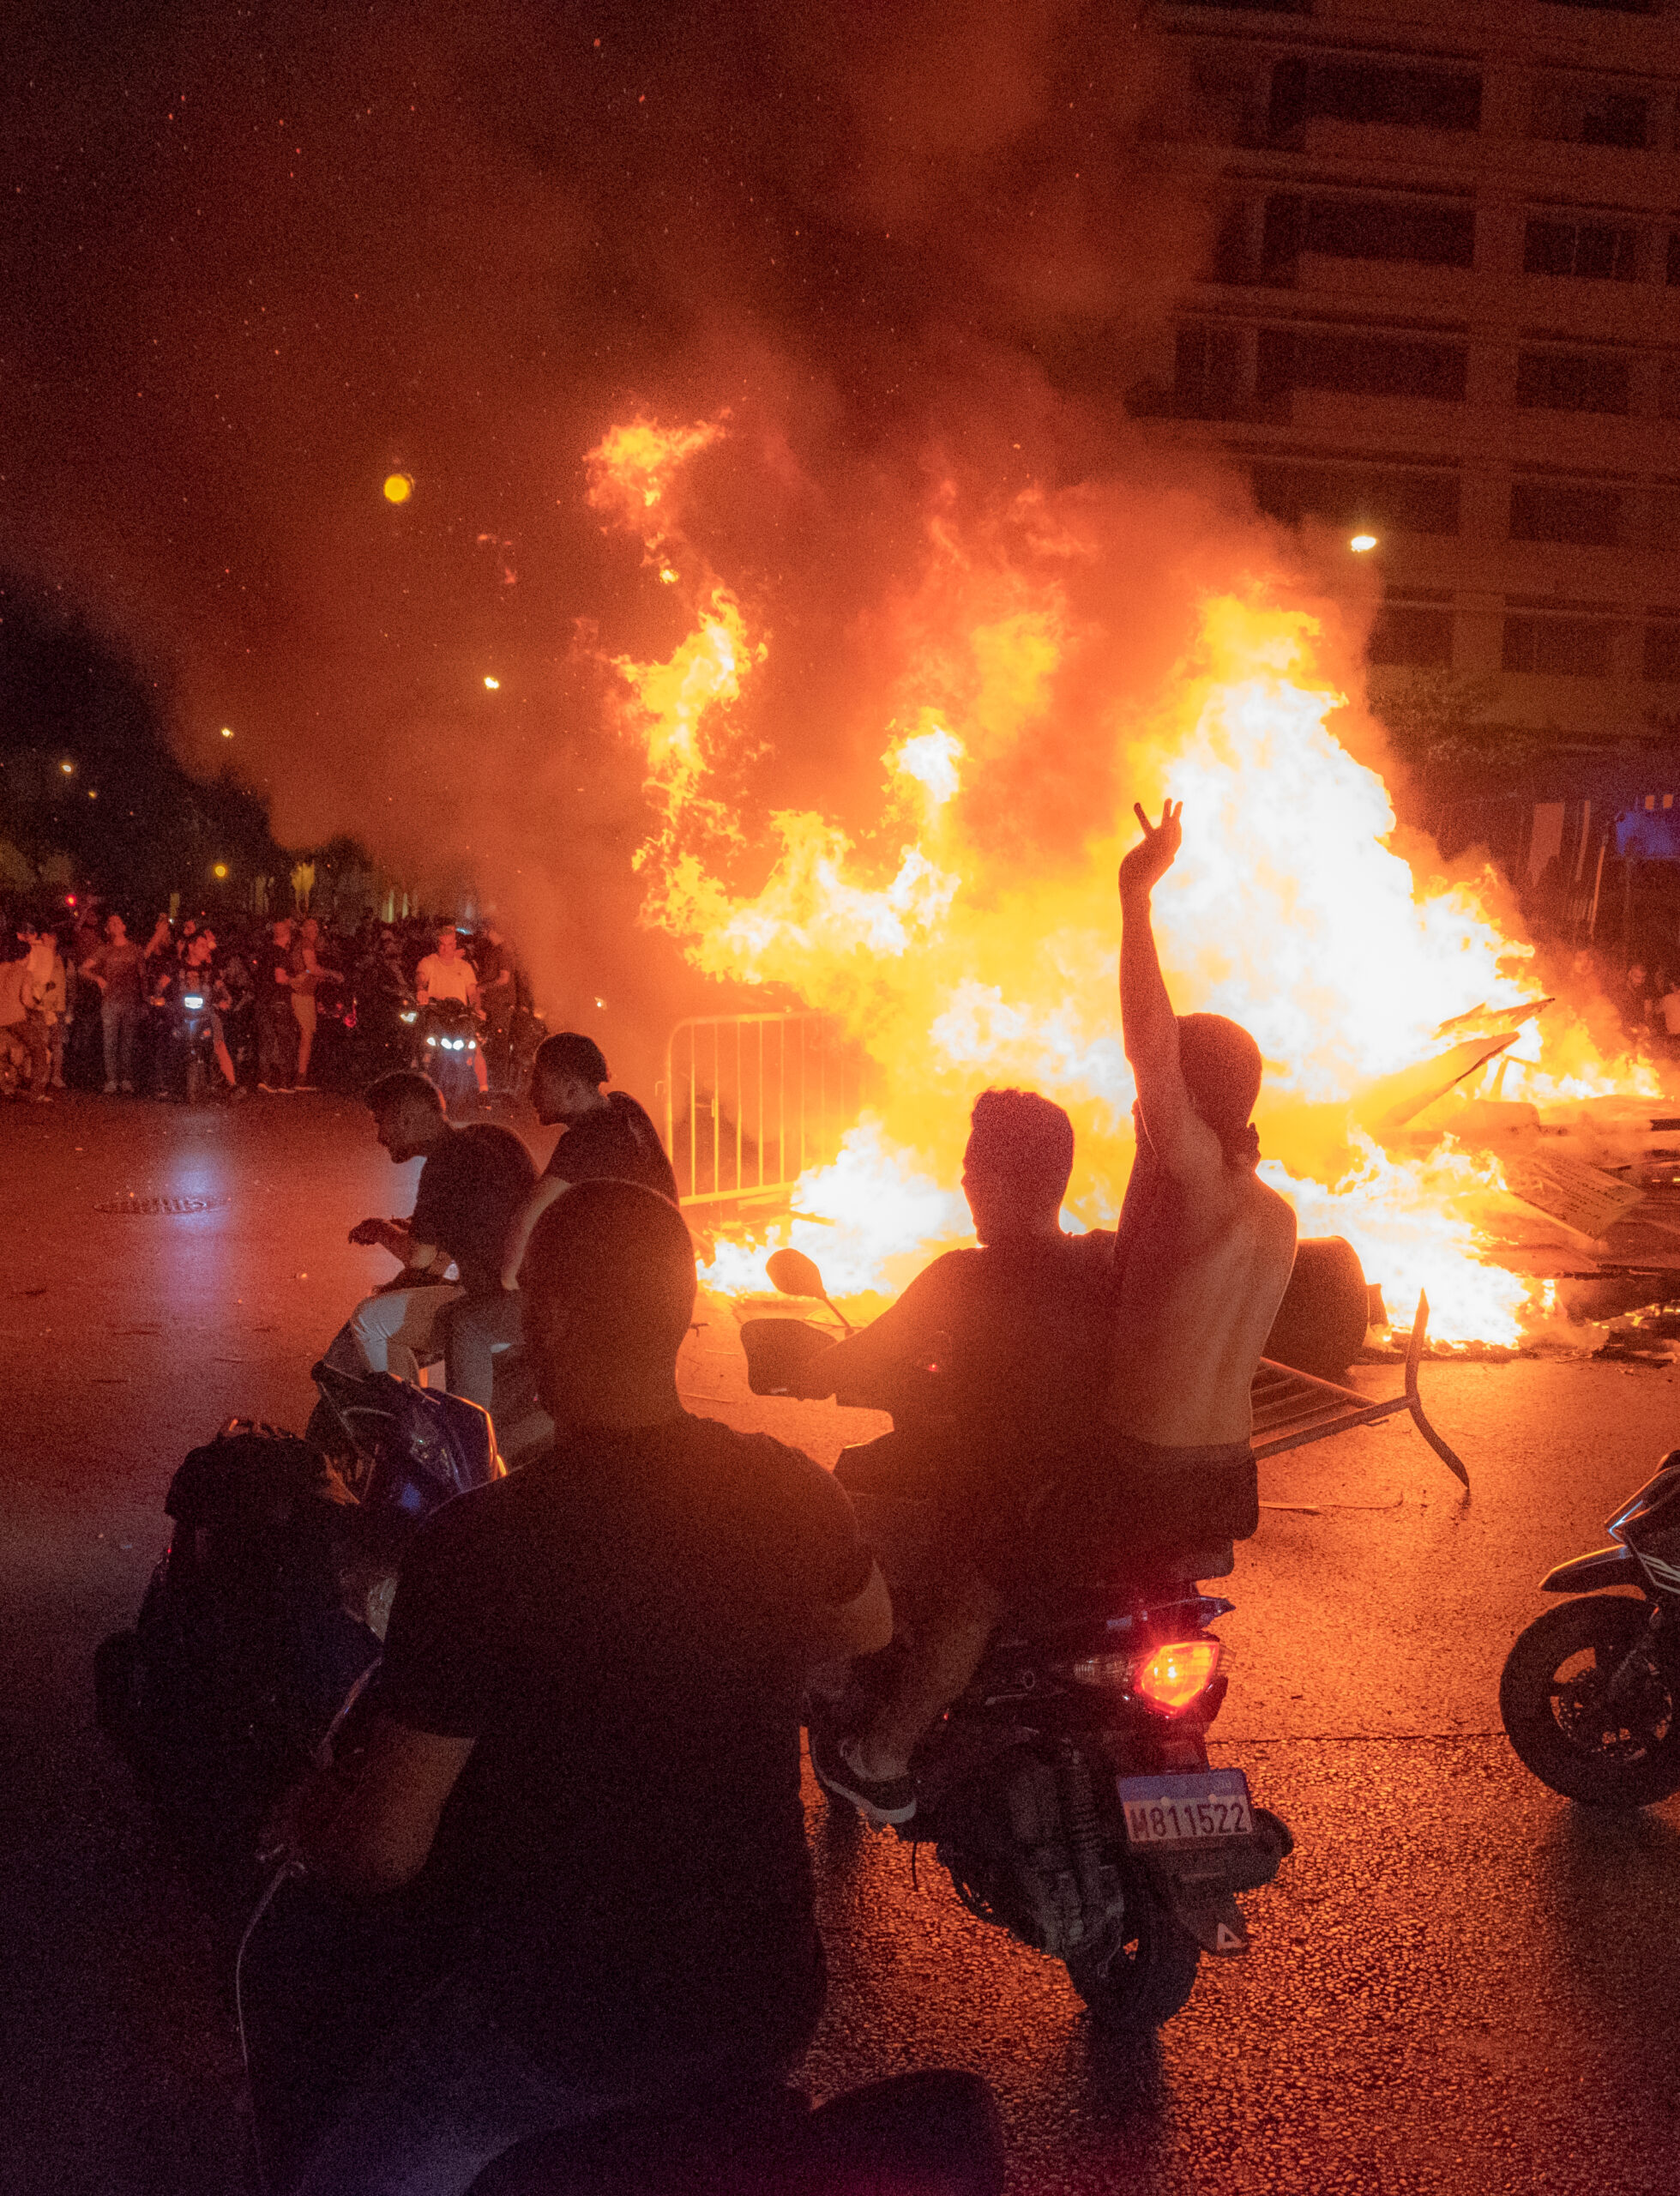 Beeping motorcycles going around the fire pit in Downtown Beirut. 17 October 2019.